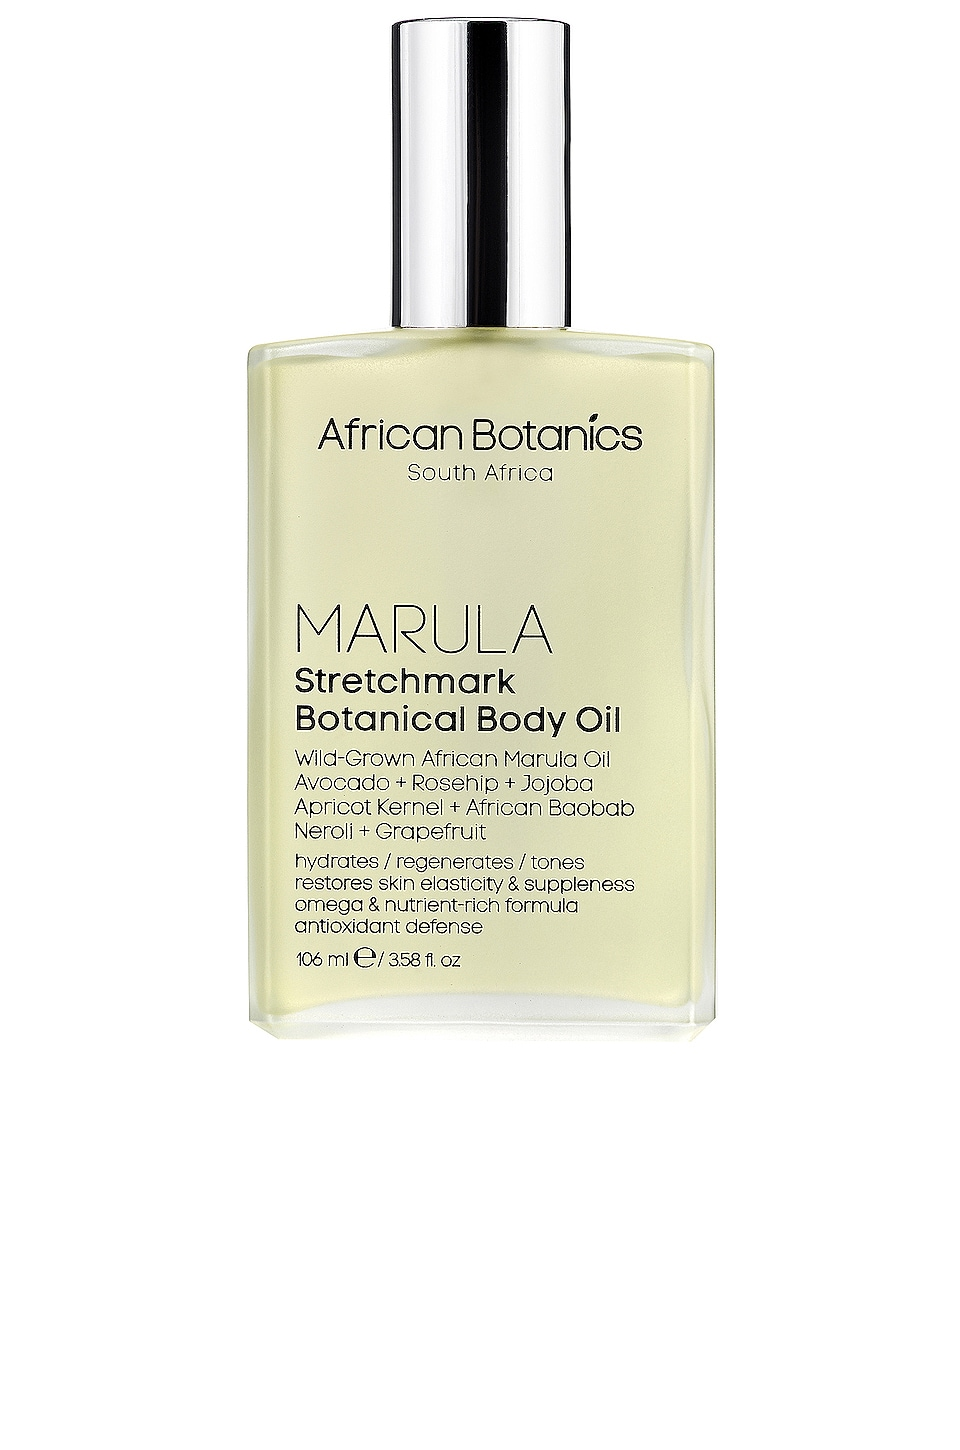 African Botanics Marula Stretch Mark Botanical Body Oil